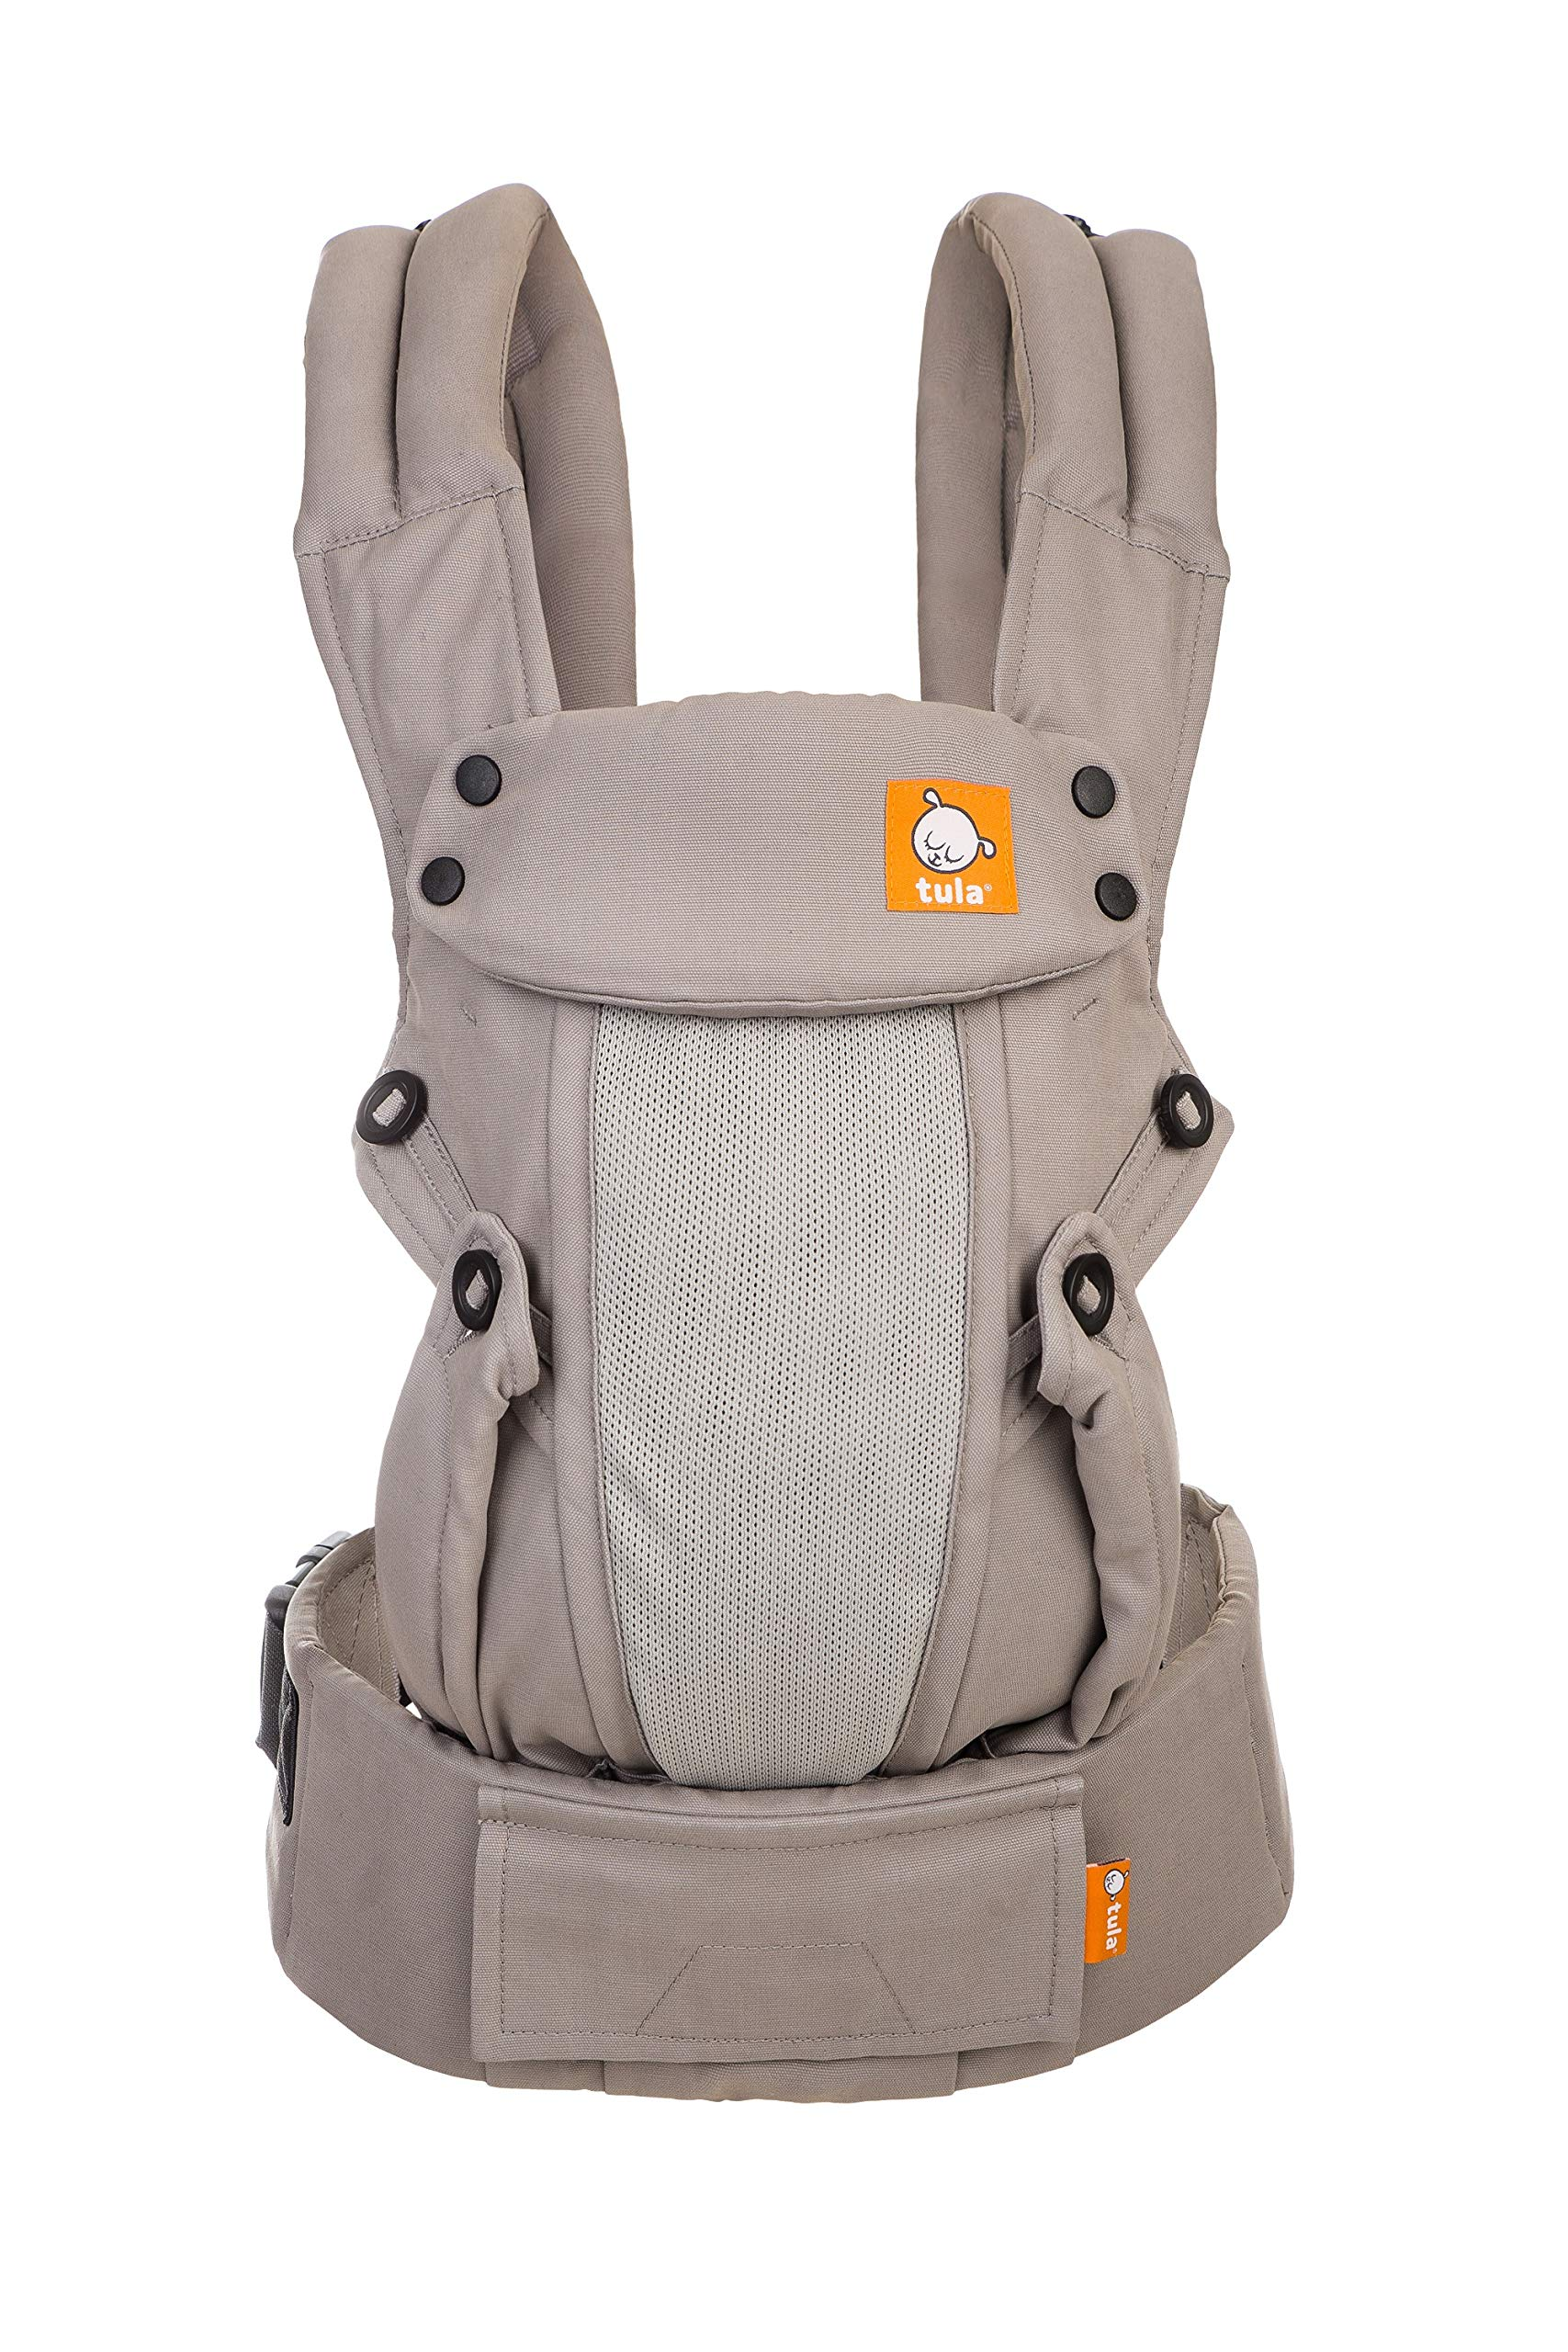 Baby Tula Coast Explore Mesh Baby Carrier 7 - 45 lb, Adjustable Newborn to Toddler Carrier, Multiple Ergonomic Positions Front and Back, Breathable - Coast Overcast, Light Gray with Light Gray Mesh Tula STAY COOL MESH CARRIER PANEL: Large mesh panel provides extra ventilation for optimal breathability to keep wearer and baby cool. BREATHABLE & LIGHTWEIGHT MATERIAL: Soft and lightweight 100% cotton with a large breathable mesh panel and hood that's easy to clean and machine washable. EVERY CARRY POSITION YOUR BABY WILL NEED, INCLUDING FACING OUT: Multiple positions to carry baby including front facing out*, facing in, and back carry. Each position provides a natural, ergonomic position best for comfortable carrying that promotes healthy hip and spine development for baby. 1